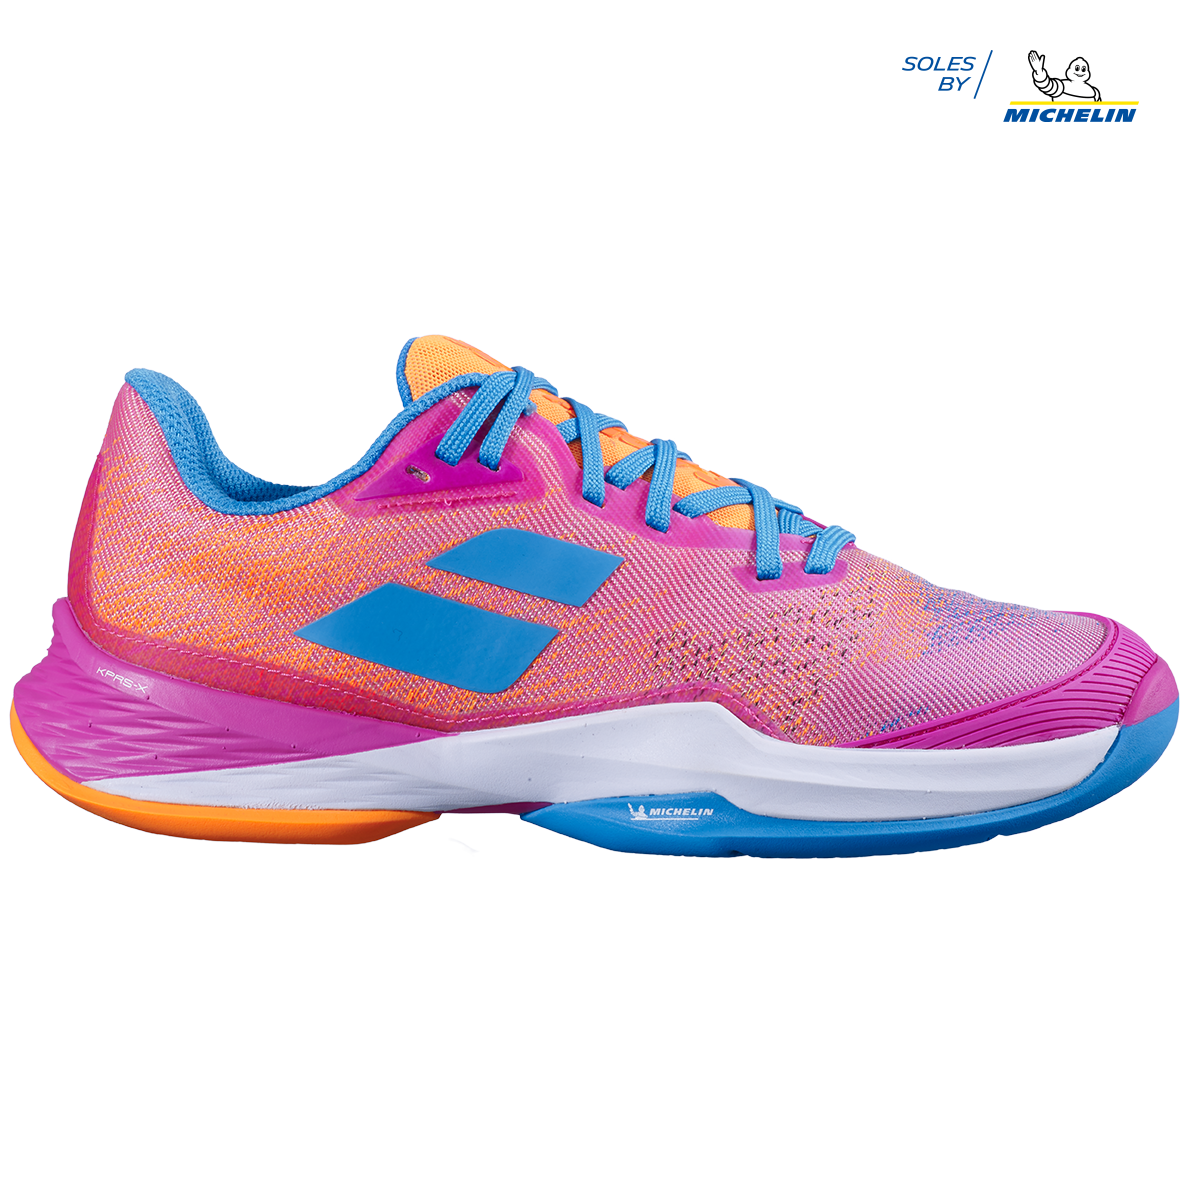 Details about  /Babolat Womens Jet Mach All Court Tennis Shoes Lightweight Trainers Sneakers